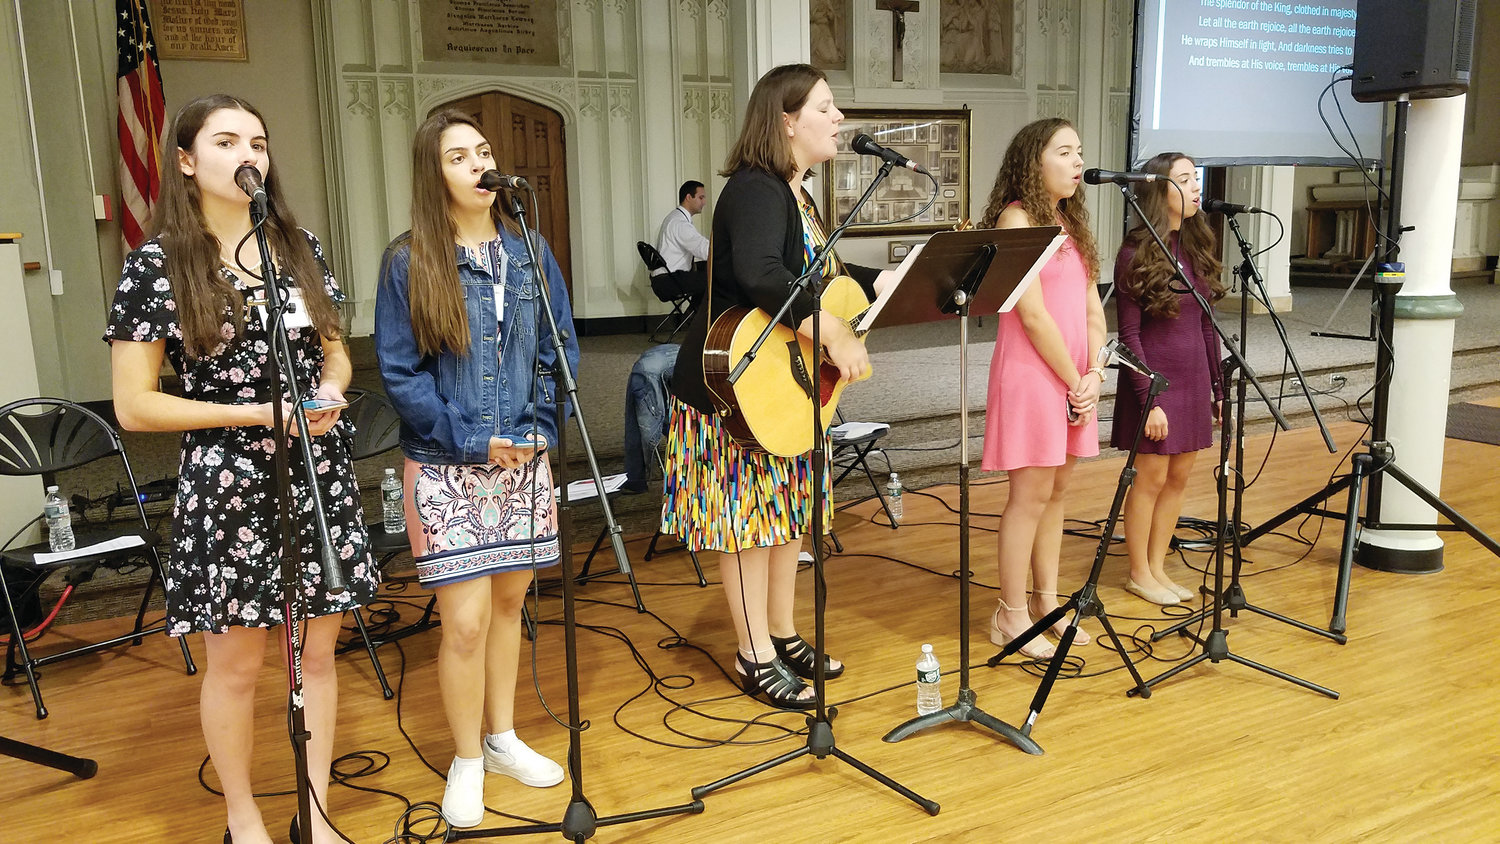 The annual Rhode Island Catholic Women's Conference, held on Saturday, Sept. 21, at the Cathedral of SS. Peter and Paul, Providence, include keynote speakers, Mass celebrated by Bishop Thomas J. Tobin, many vendors and praise and worship.